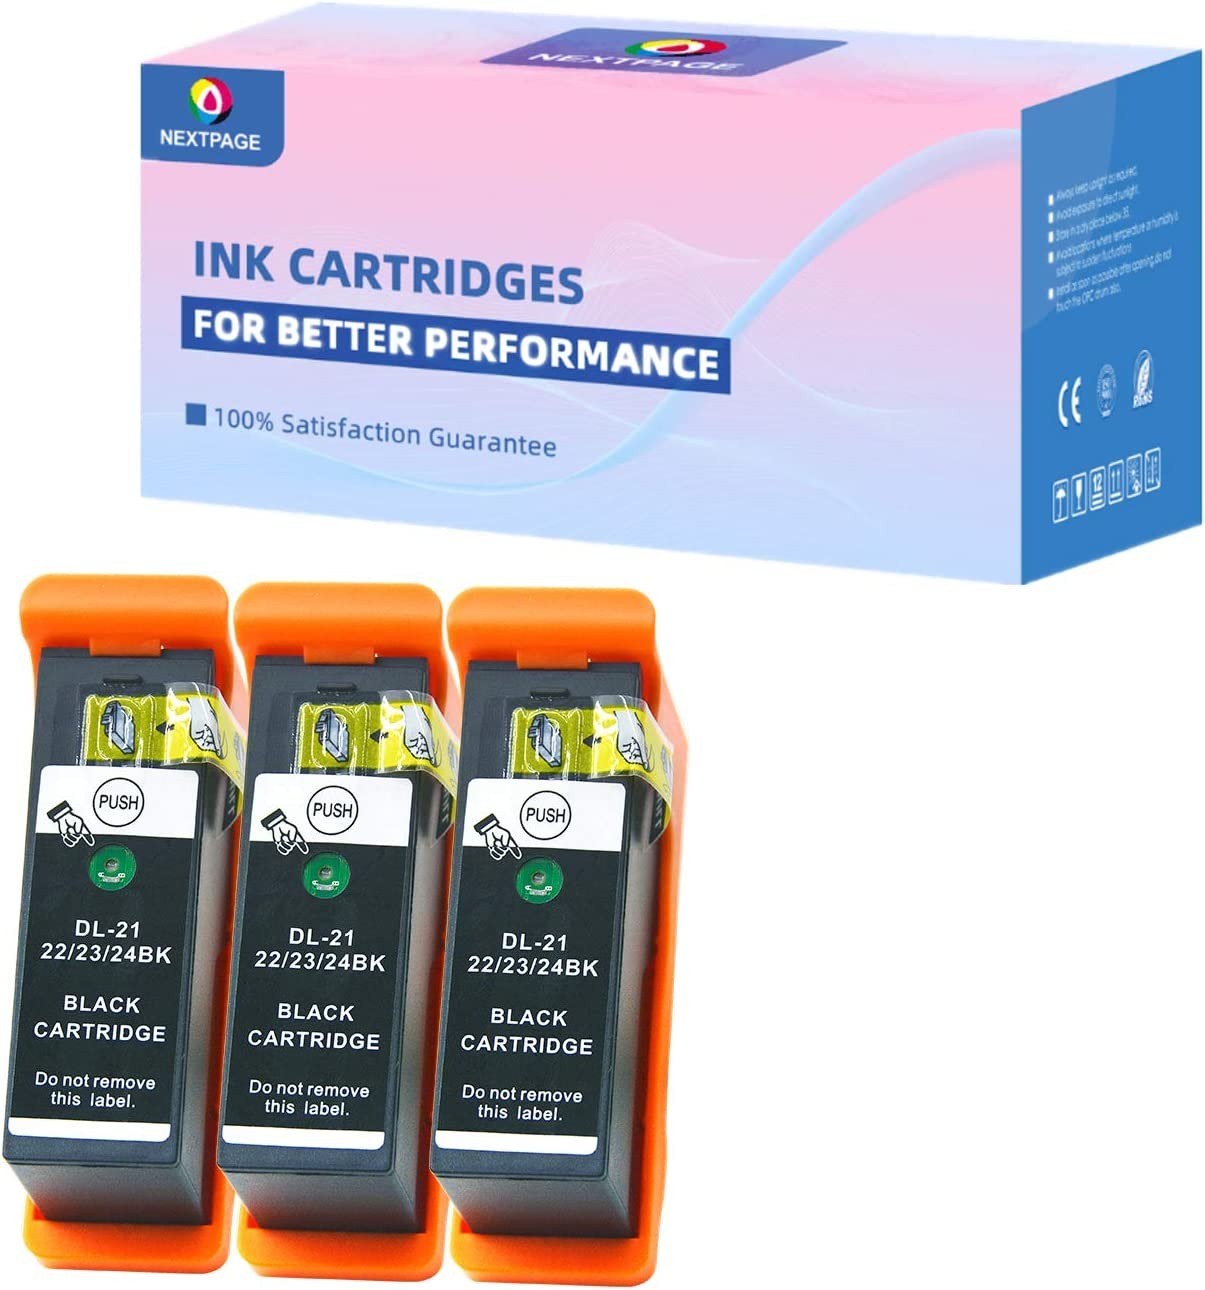 NEXTPAGE Compatible Ink Cartridges Replacement for Dell Series 21, Series 22, Series 23, Series 24 Black Ink Cartridges Compatible for Dell V313 V313W V515W P513W P713W V715W, 3 Pack